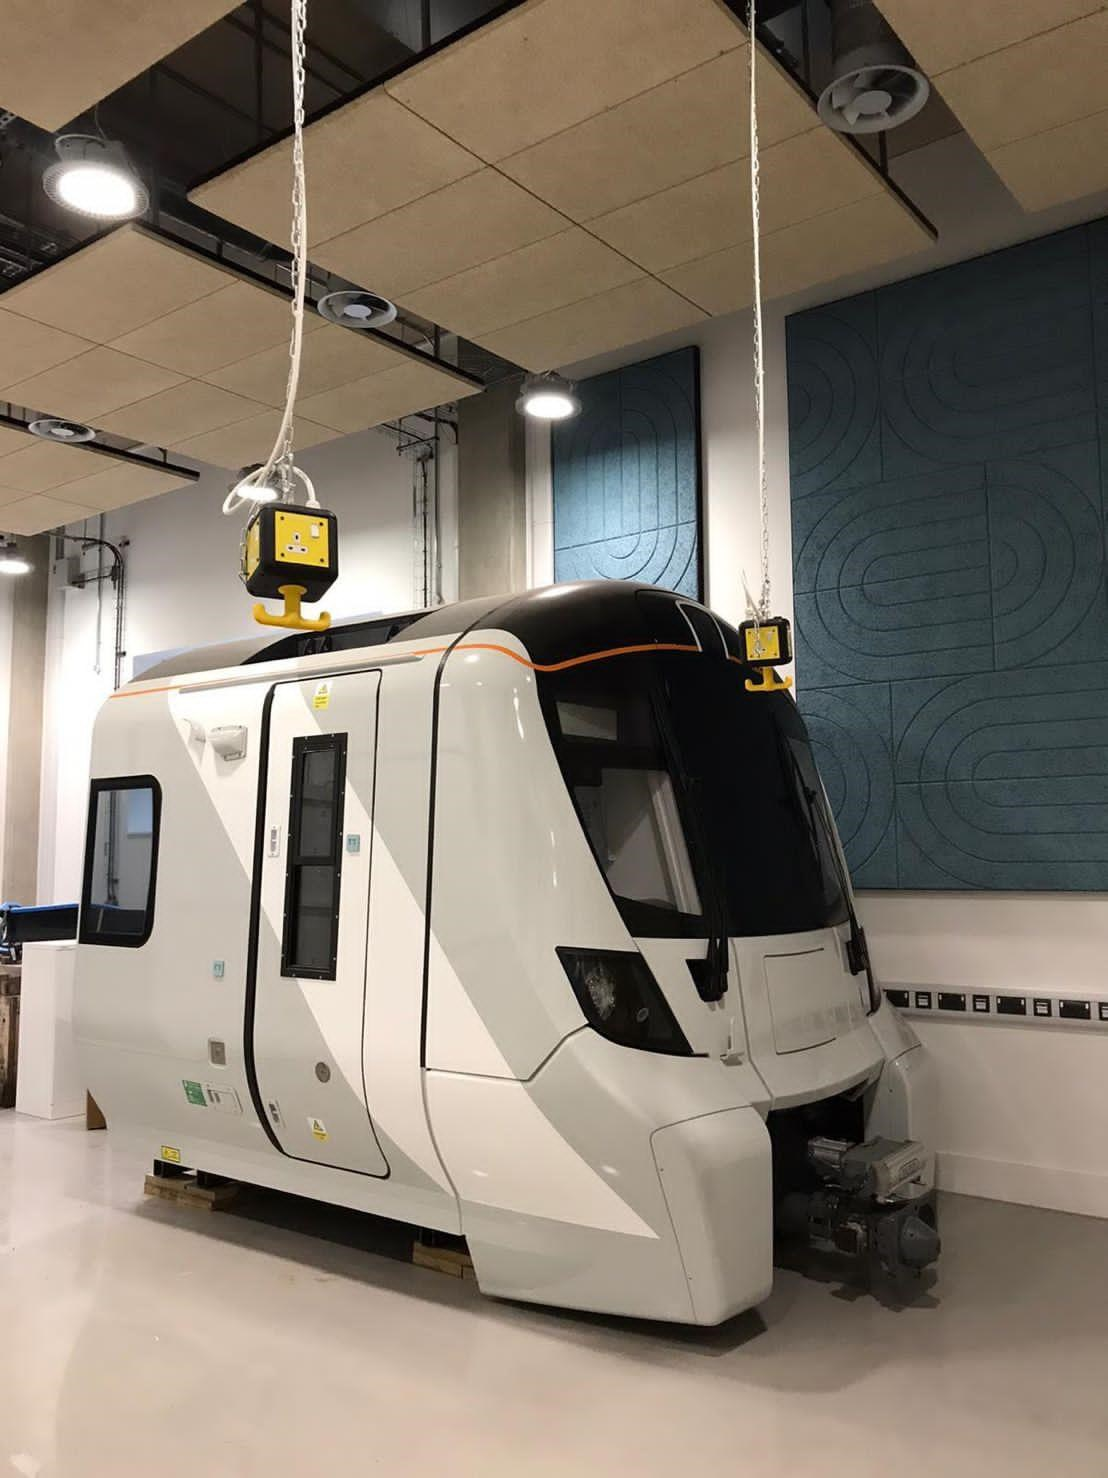 Siemens Mobility and University of Birmingham announce research and innovation partnership: PHOTO-2021-03-26-22-35-51